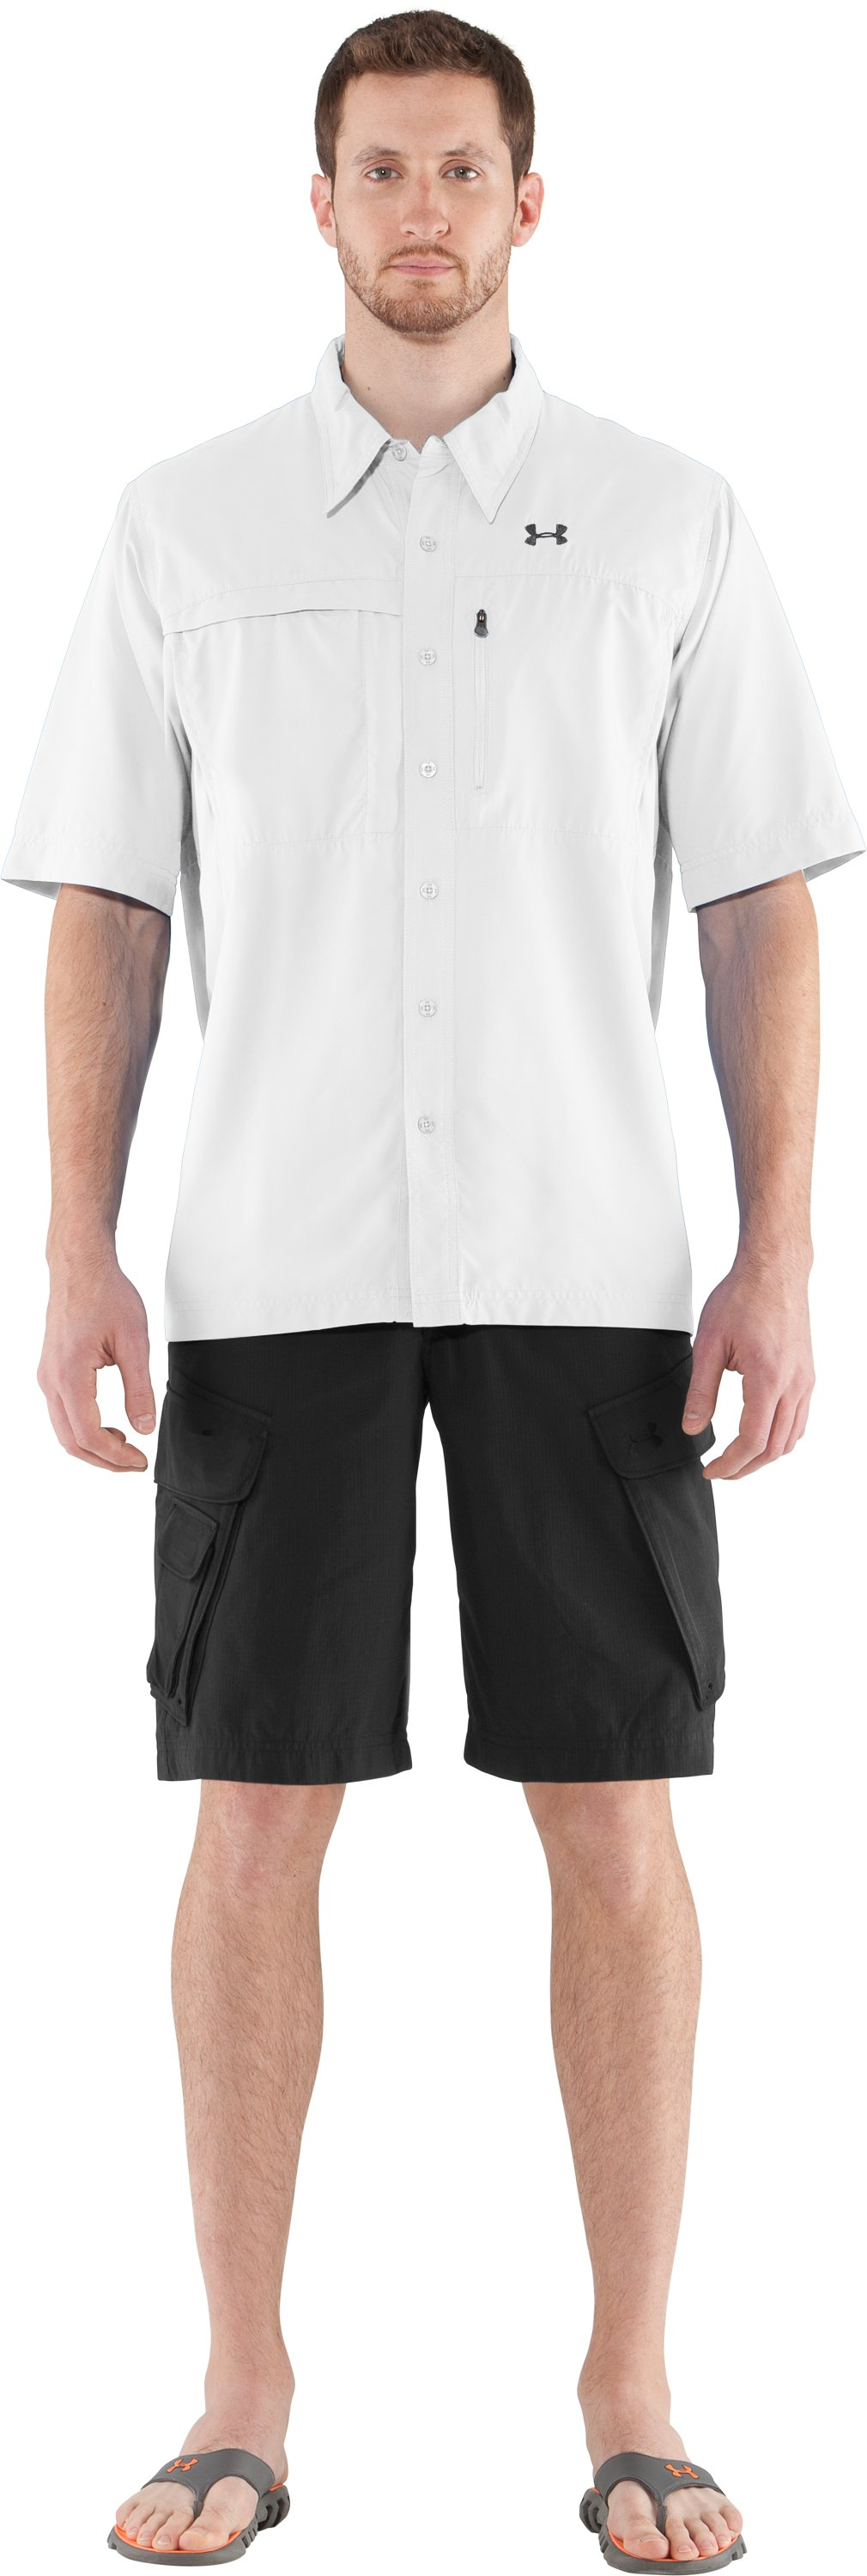 Men's Flats Guide Short Sleeve Shirt, White, Front